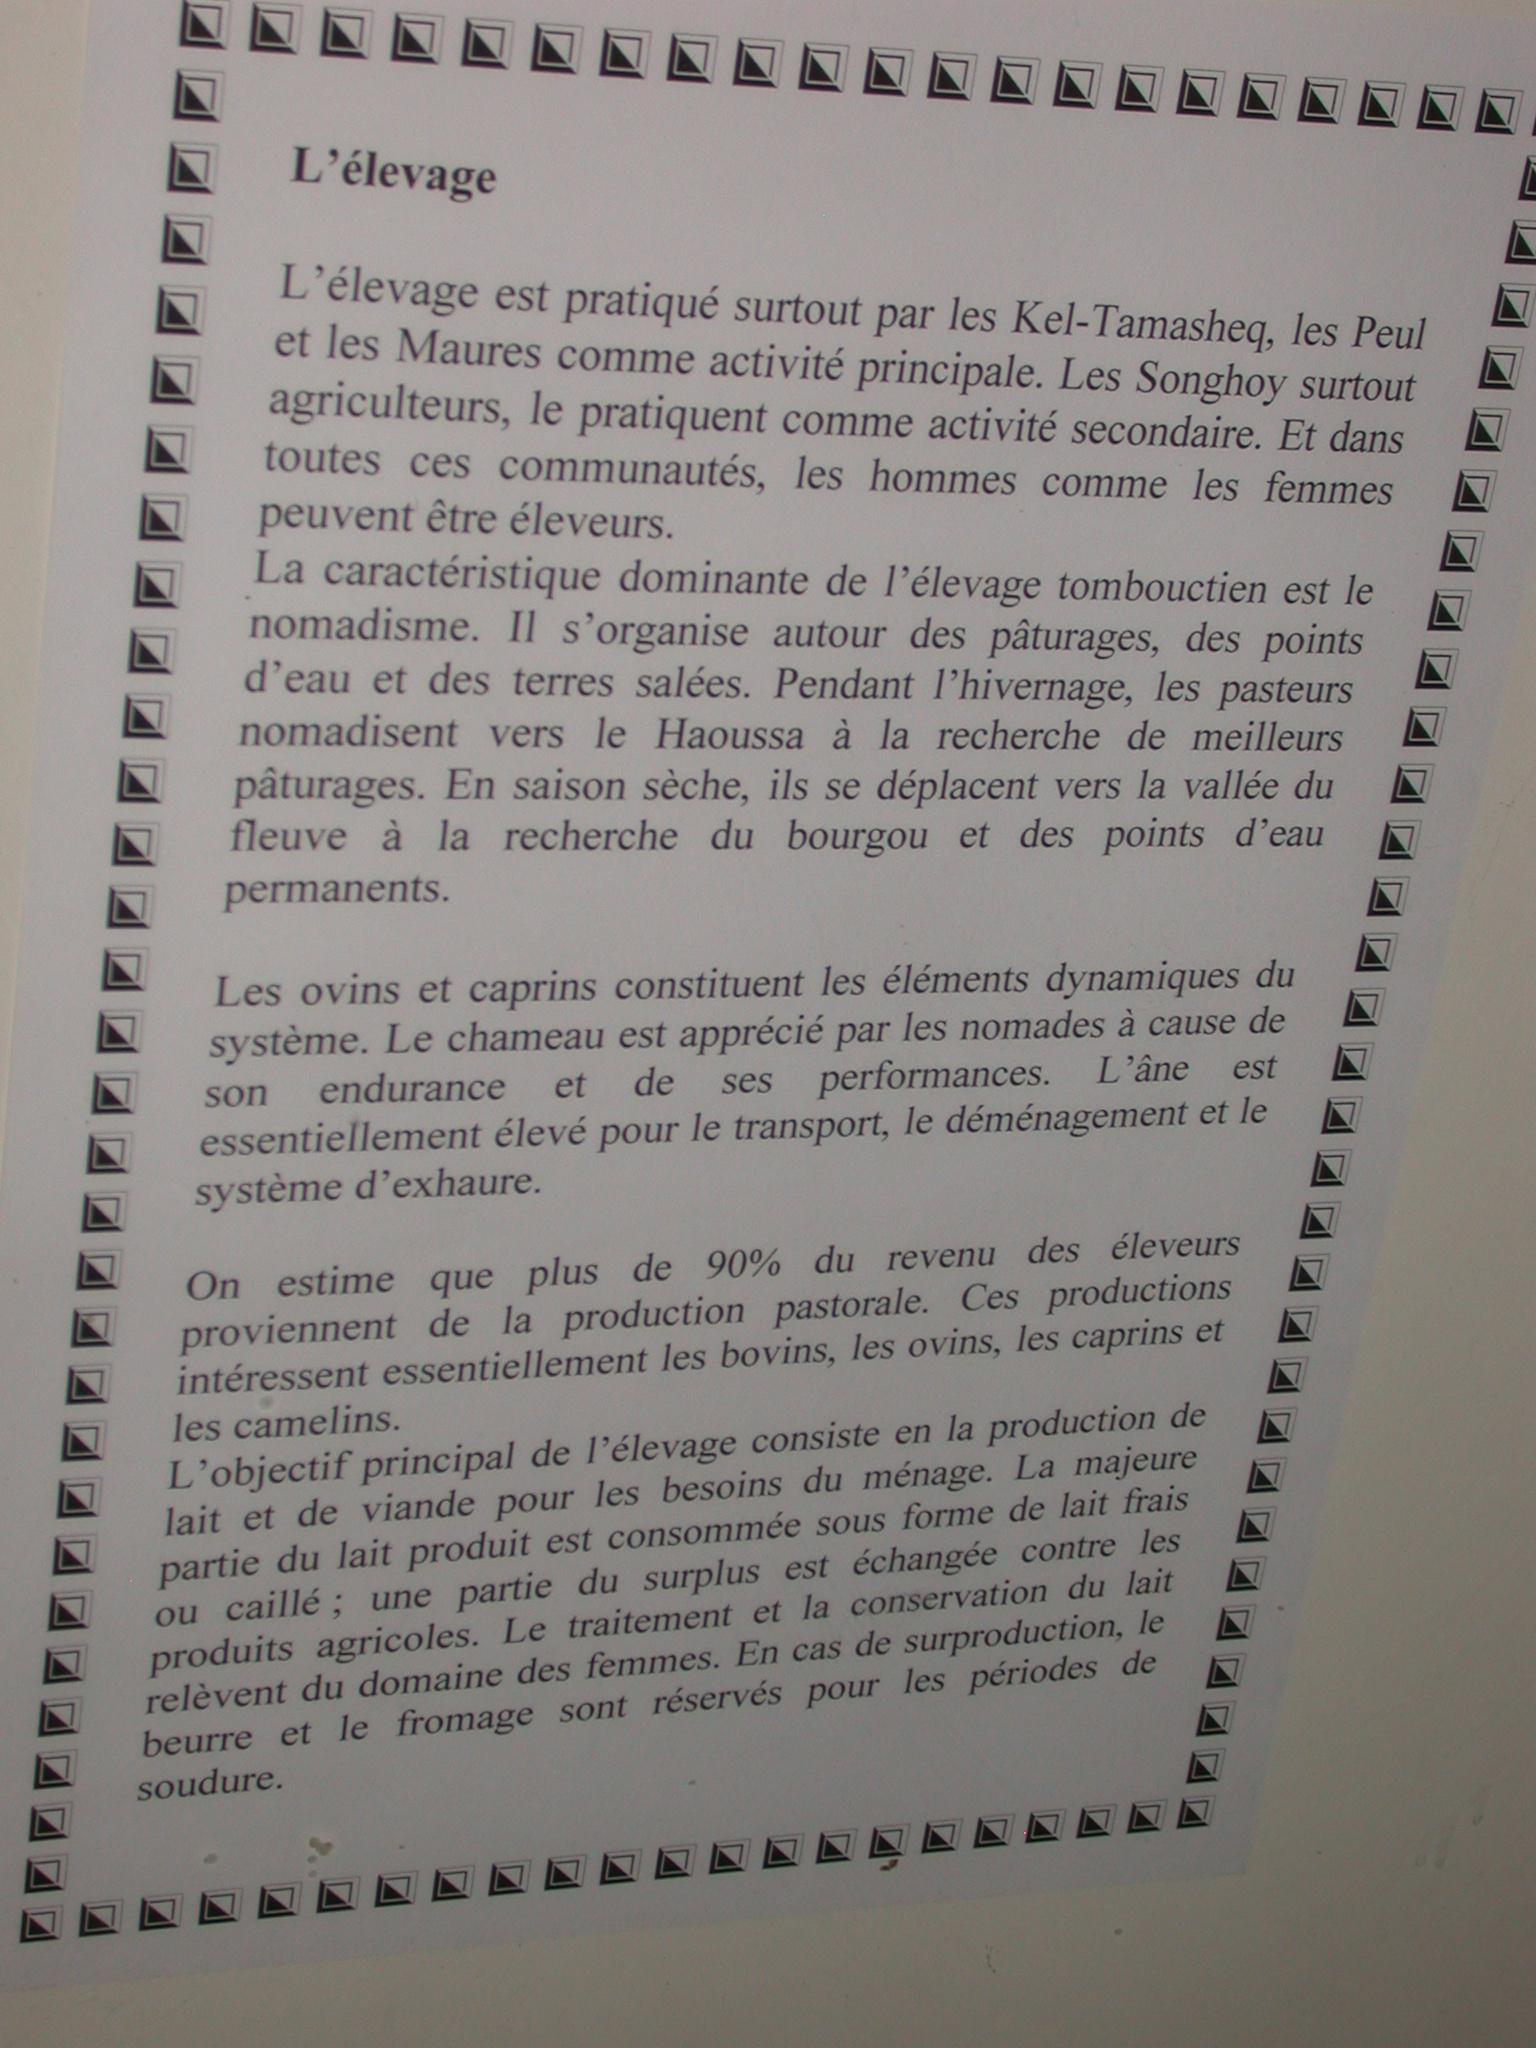 Description of Cattle Breeding, Timbuktu Ethnological Museum, Timbuktu, Mali